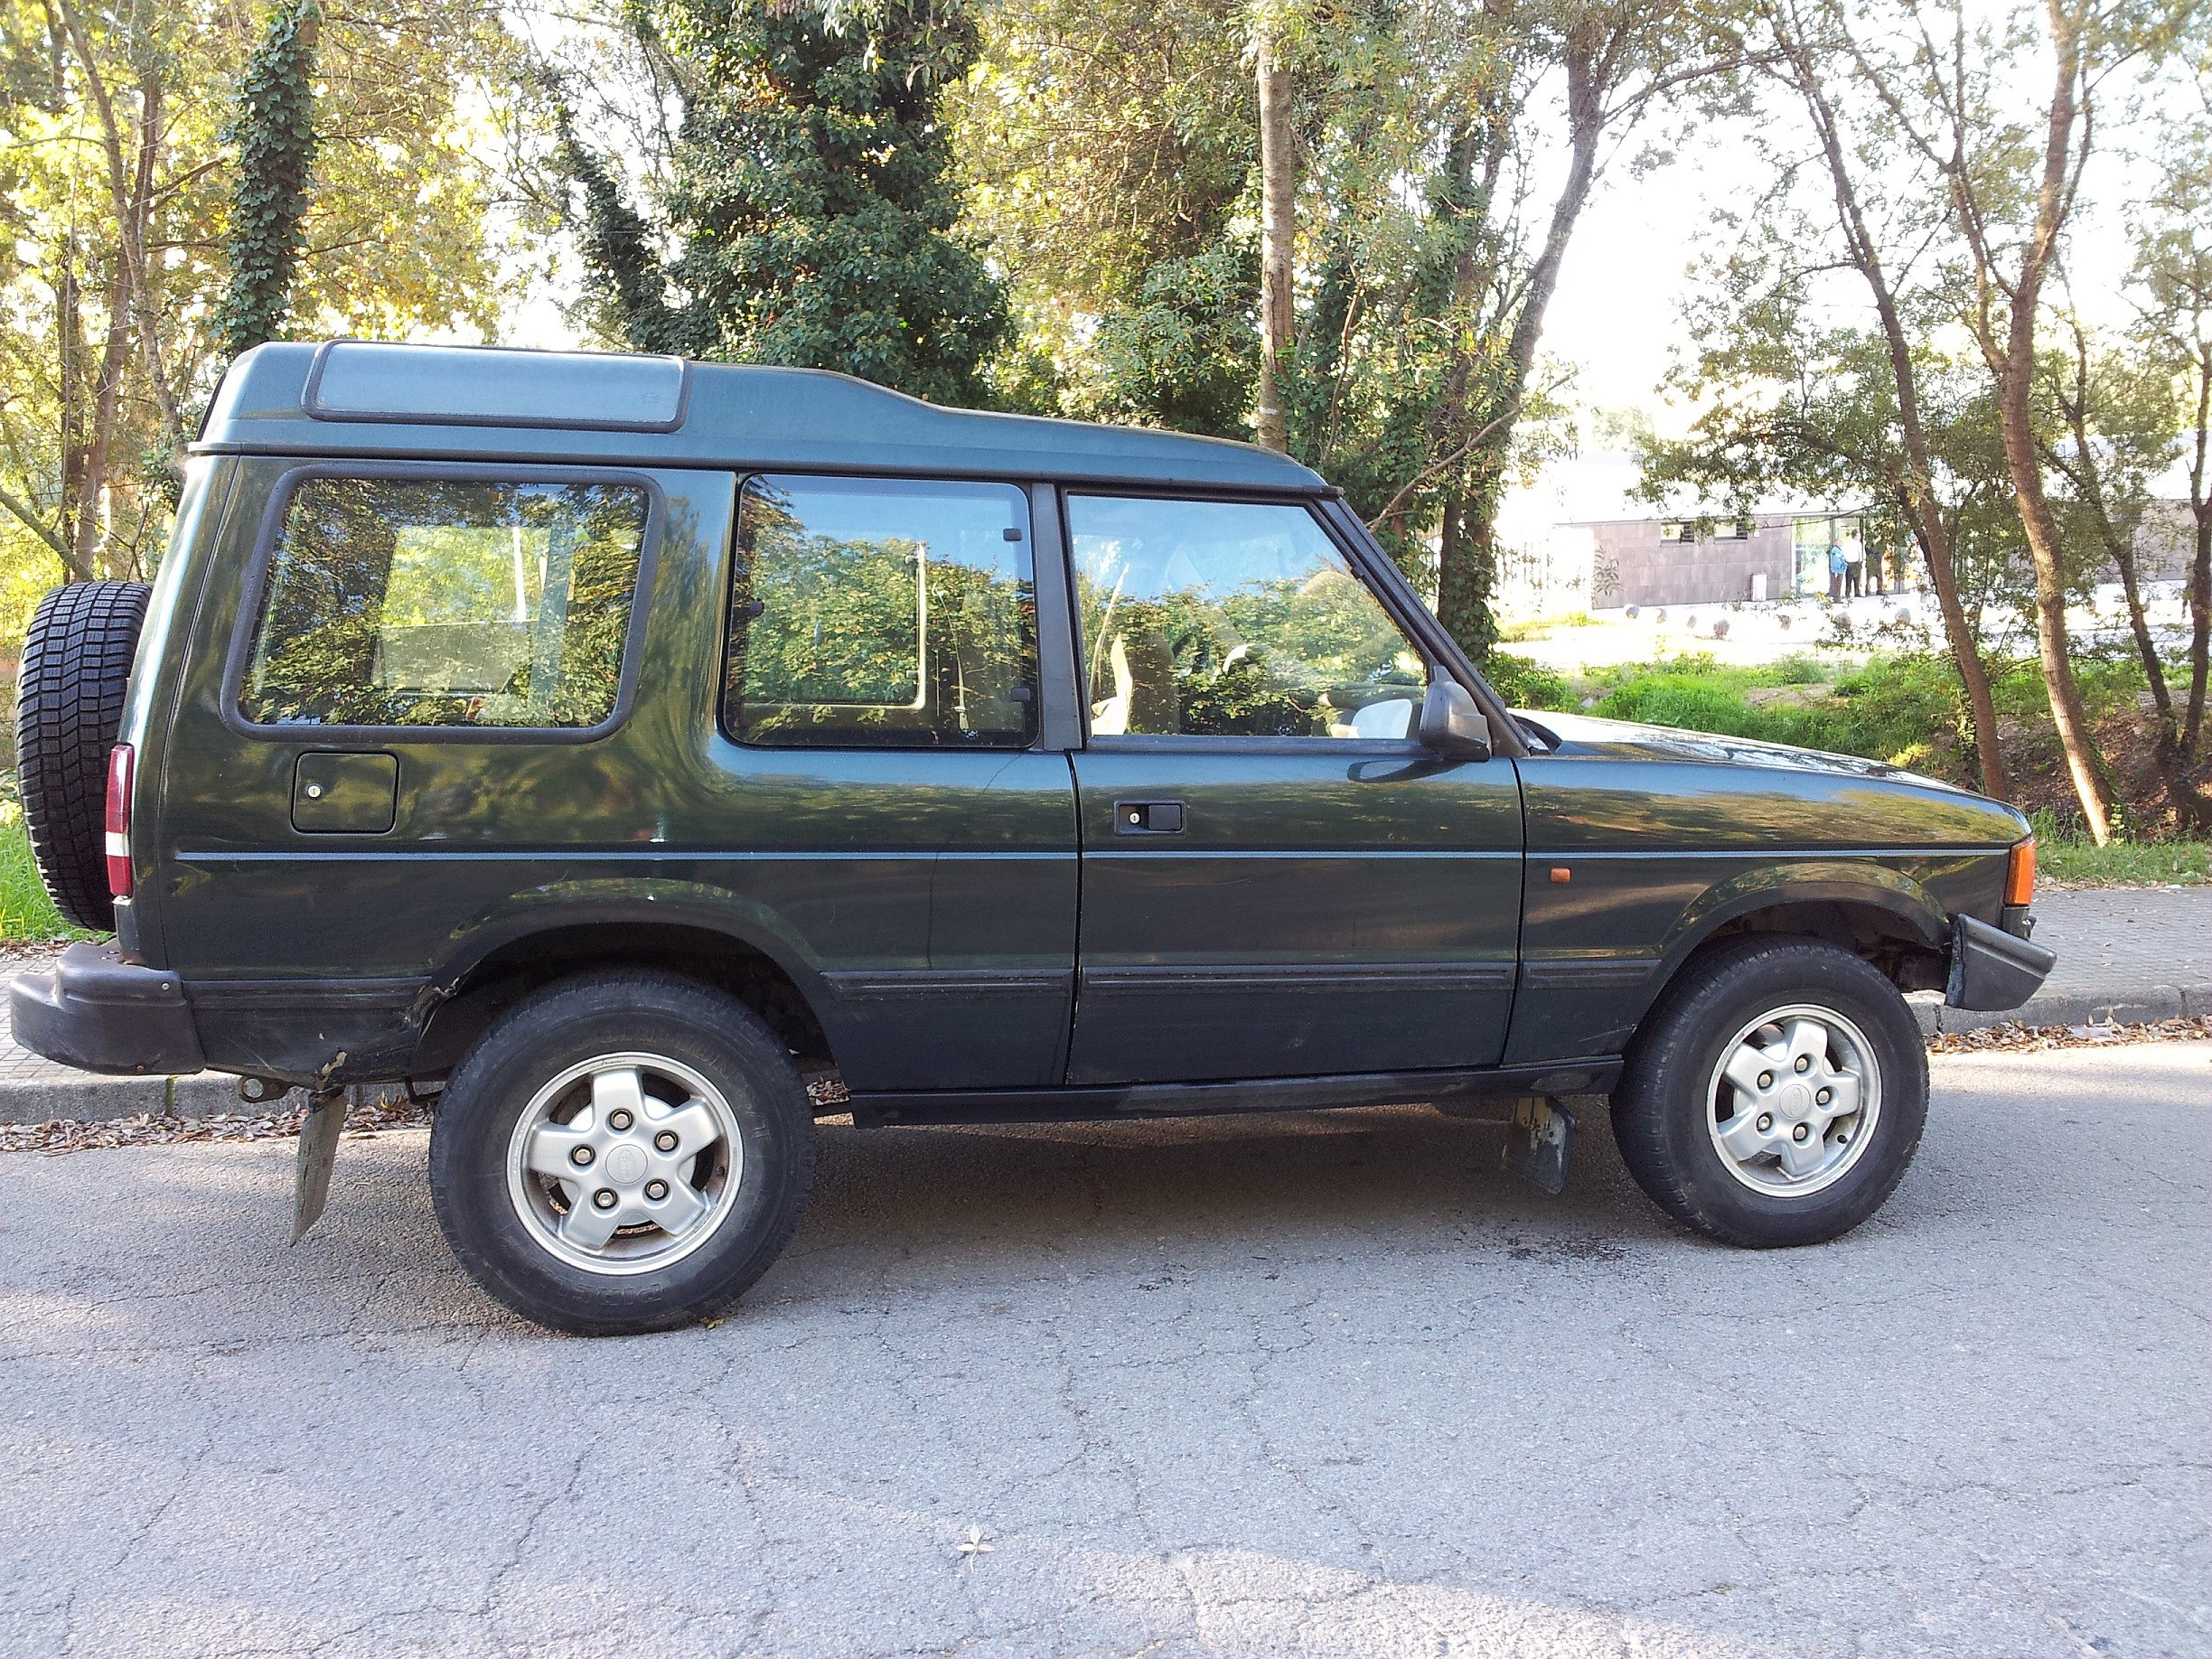 pin vendo land rover discovery 300 tdi on pinterest. Black Bedroom Furniture Sets. Home Design Ideas